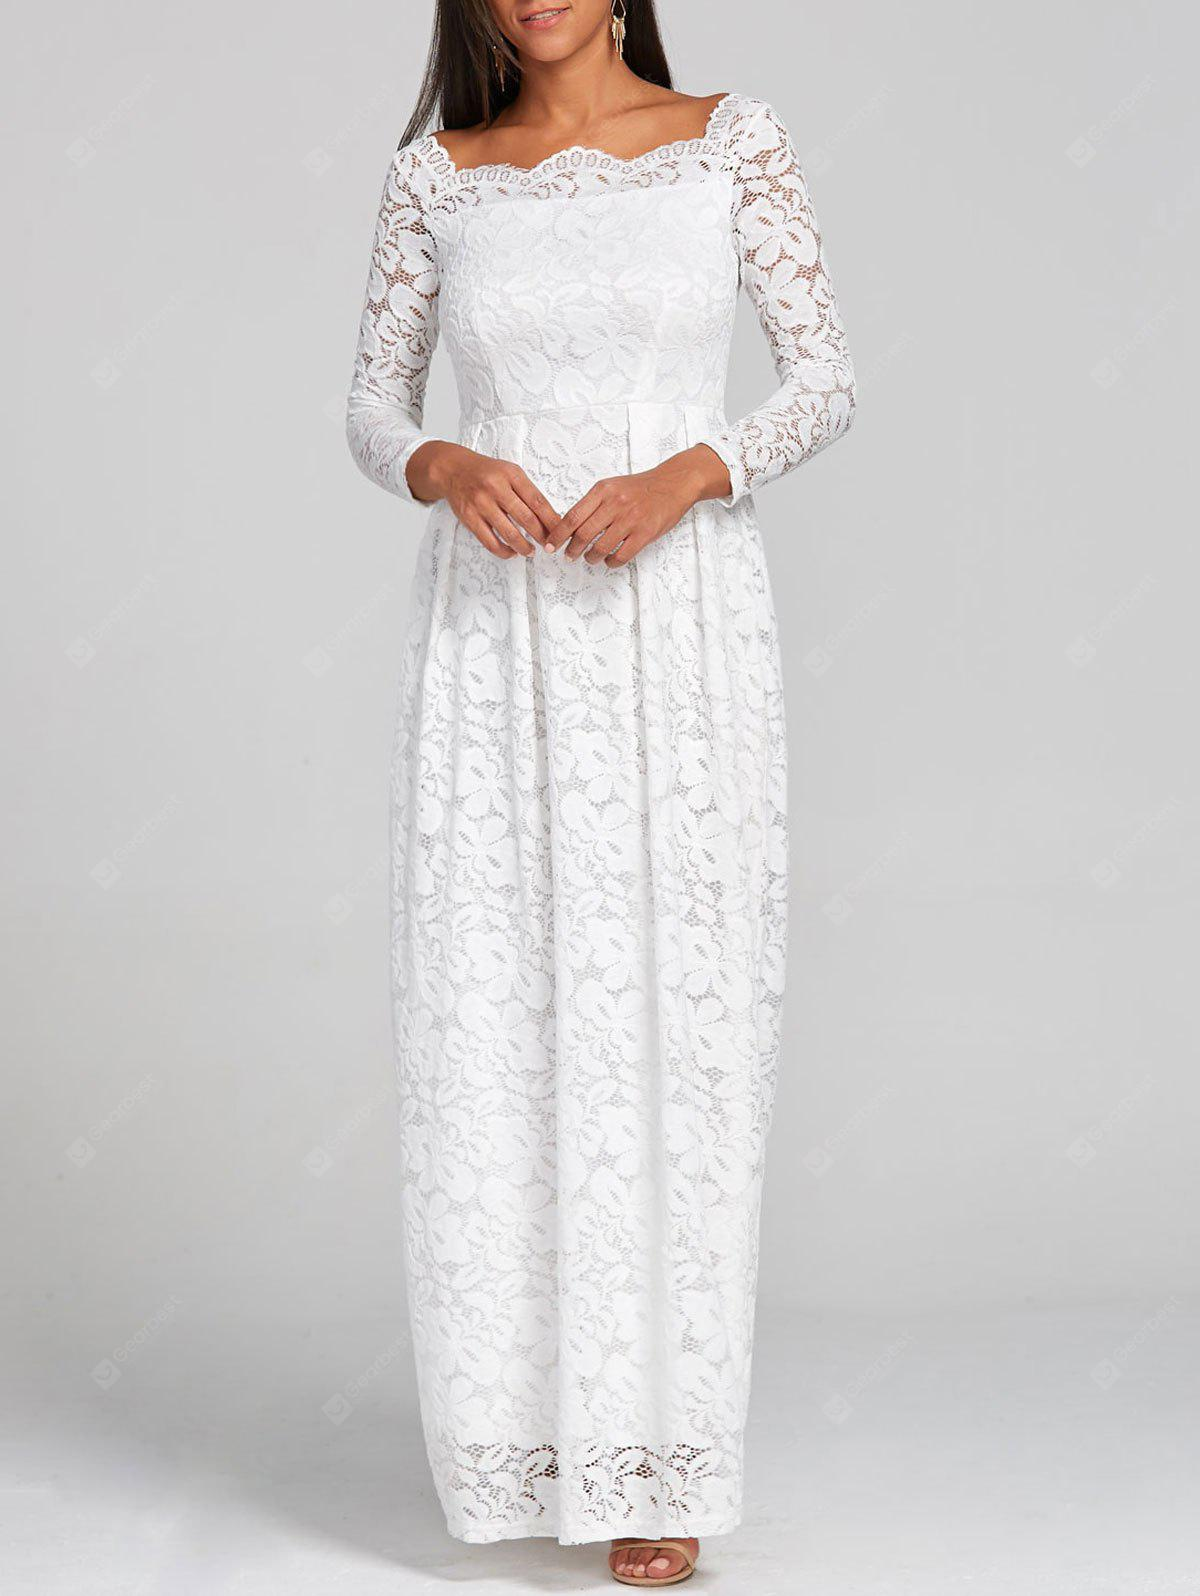 WHITE 2XL Lace Formal Floor Length Dress